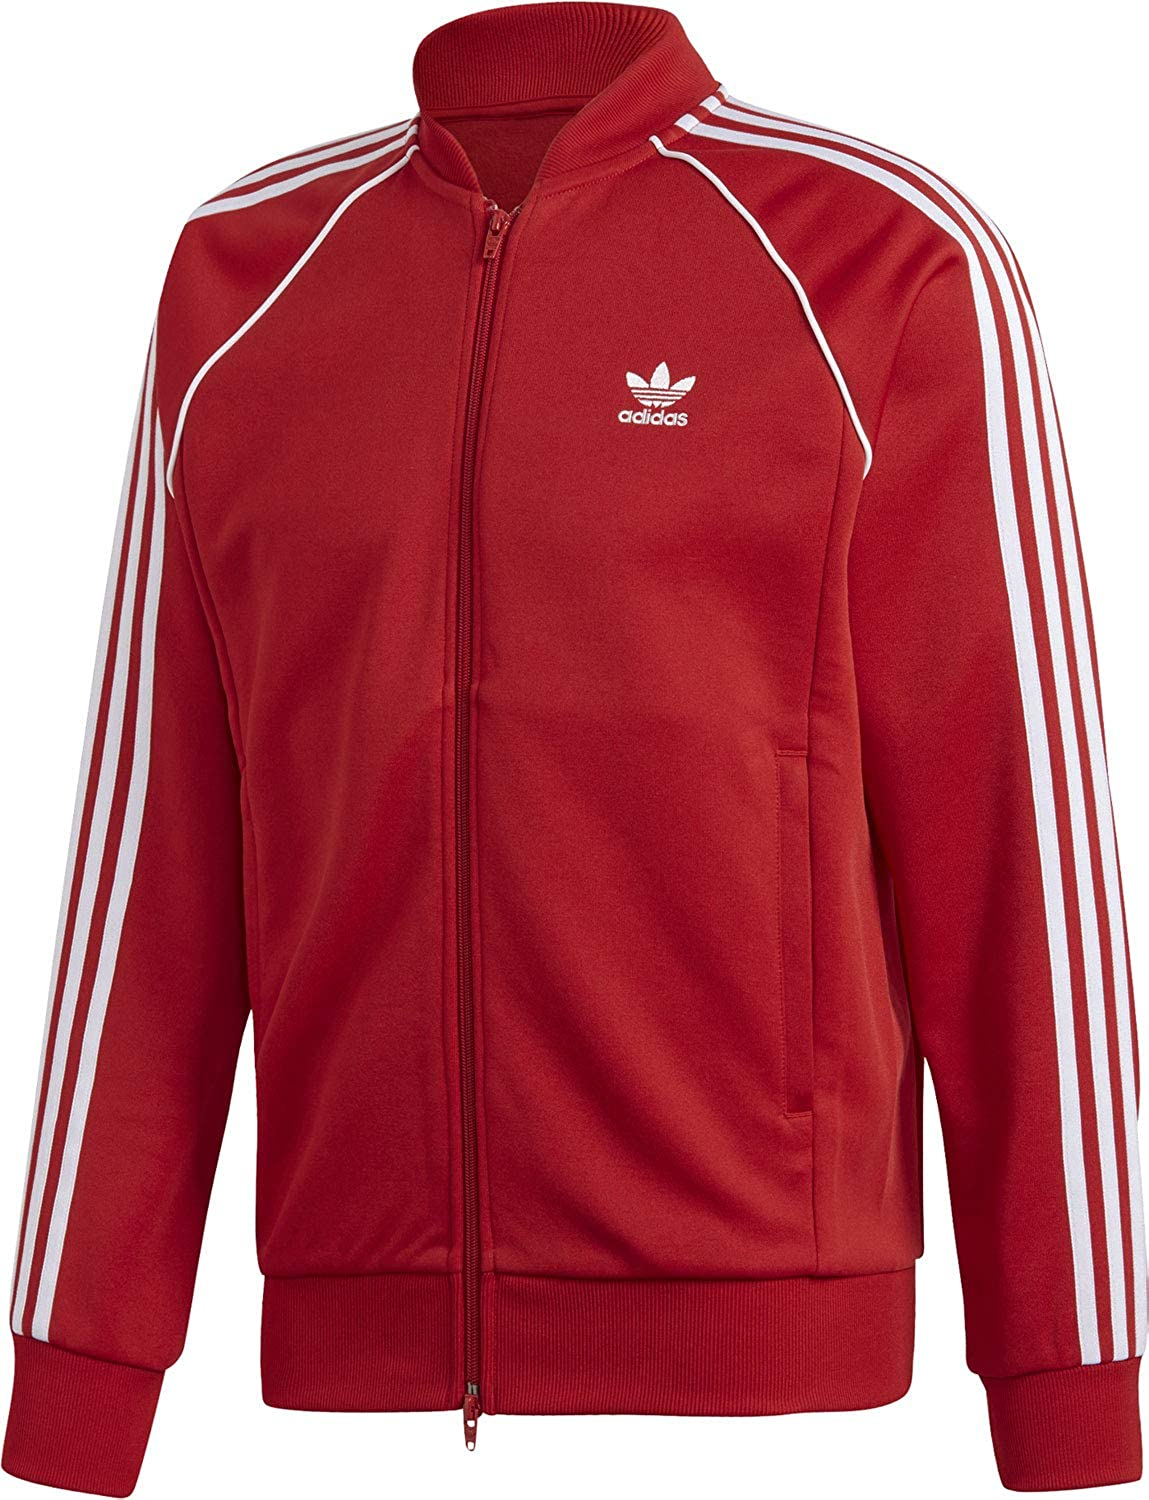 adidas Trefoil Warm up Crew, Felpa Uomo: MainApps: Amazon.it